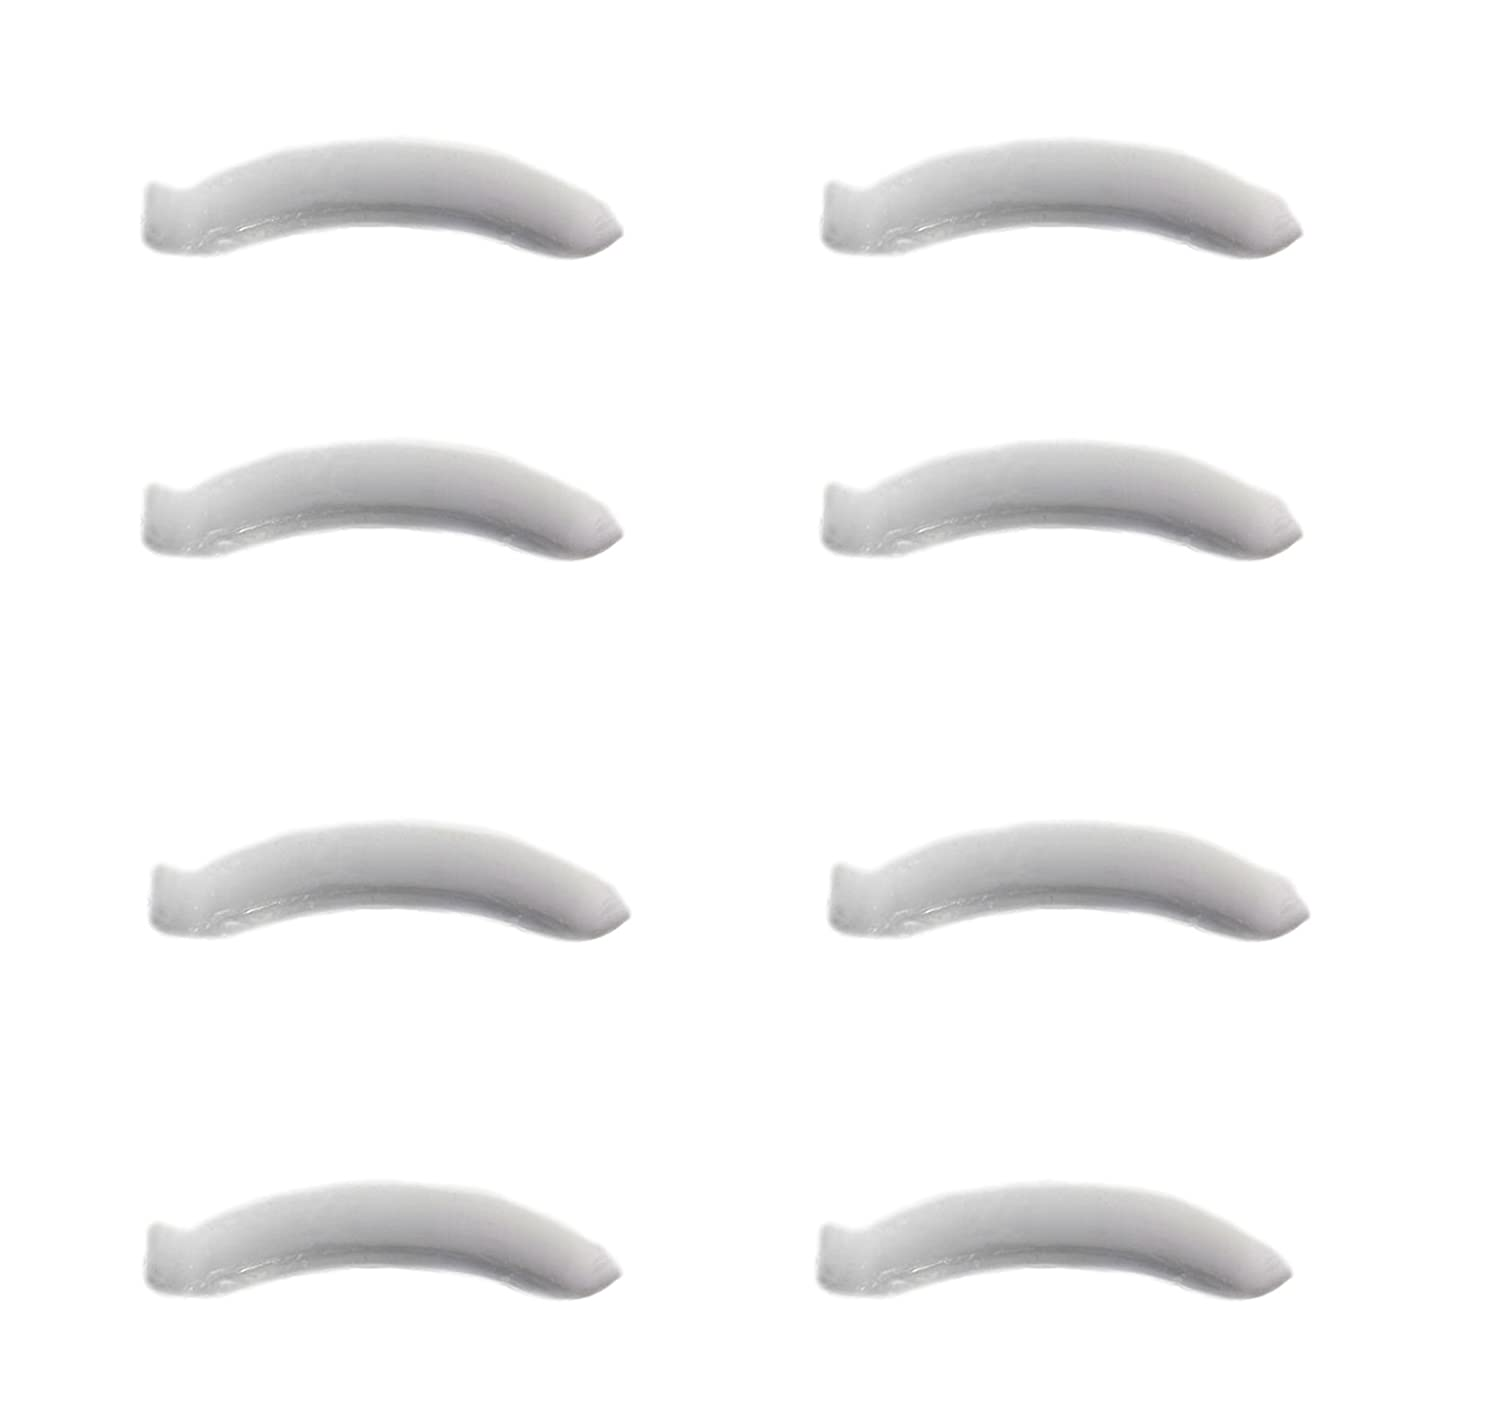 Amazon.com: Grillz Molding Bars x 8 - One Size Fits All Custom ...